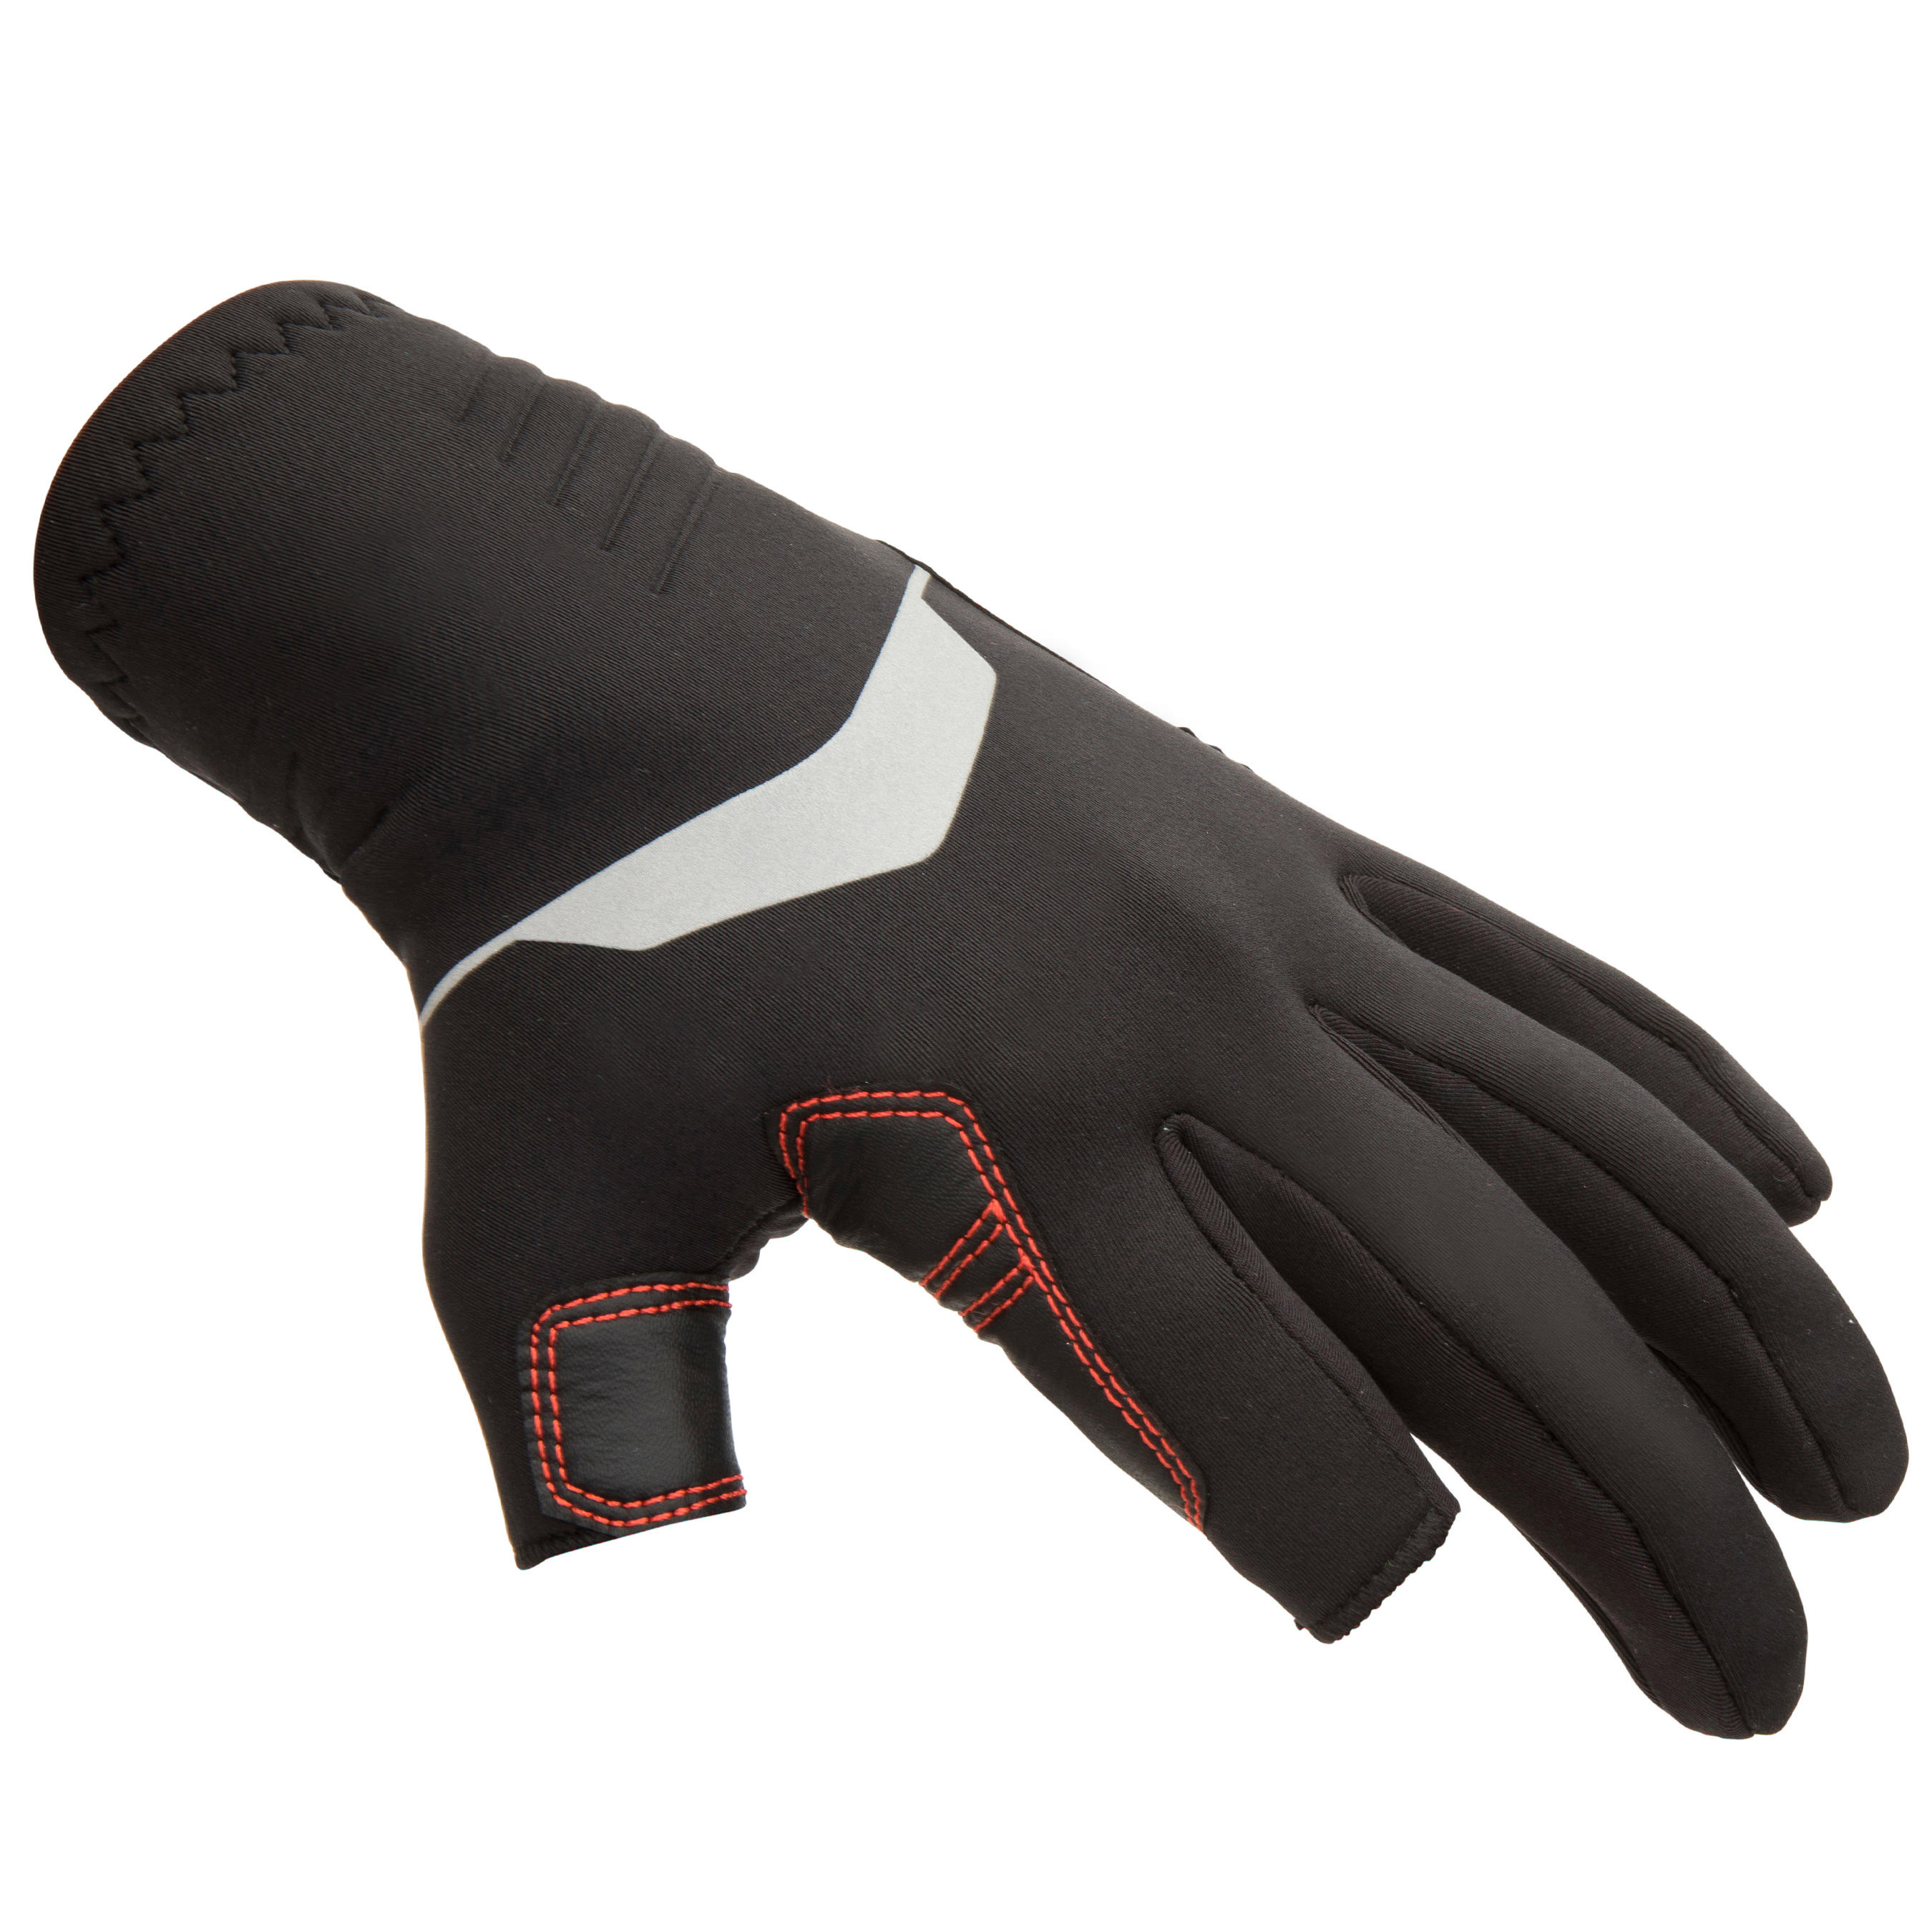 900 Adult Sailing Gloves with Two Fingers Cut - Black